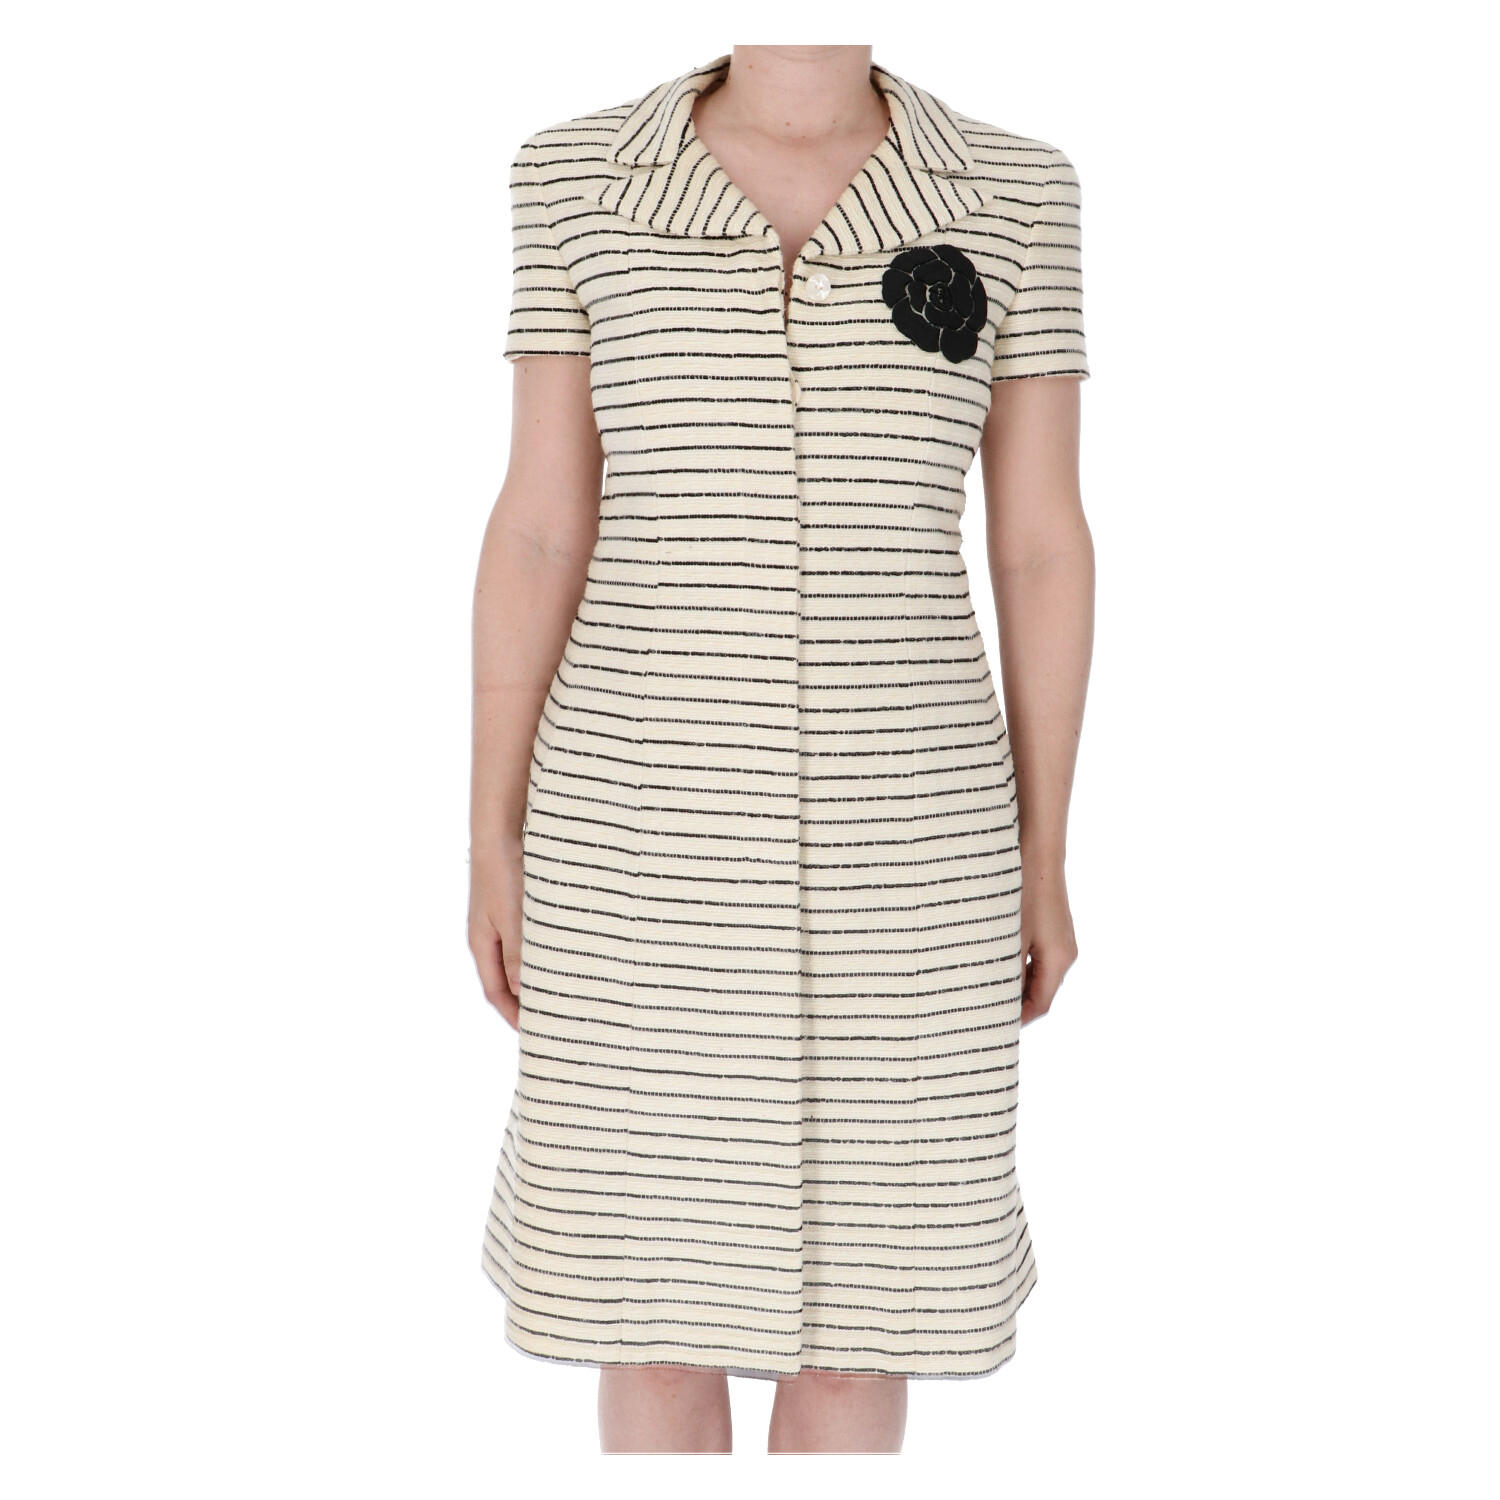 Chanel Beige Tweed Blazer Dress